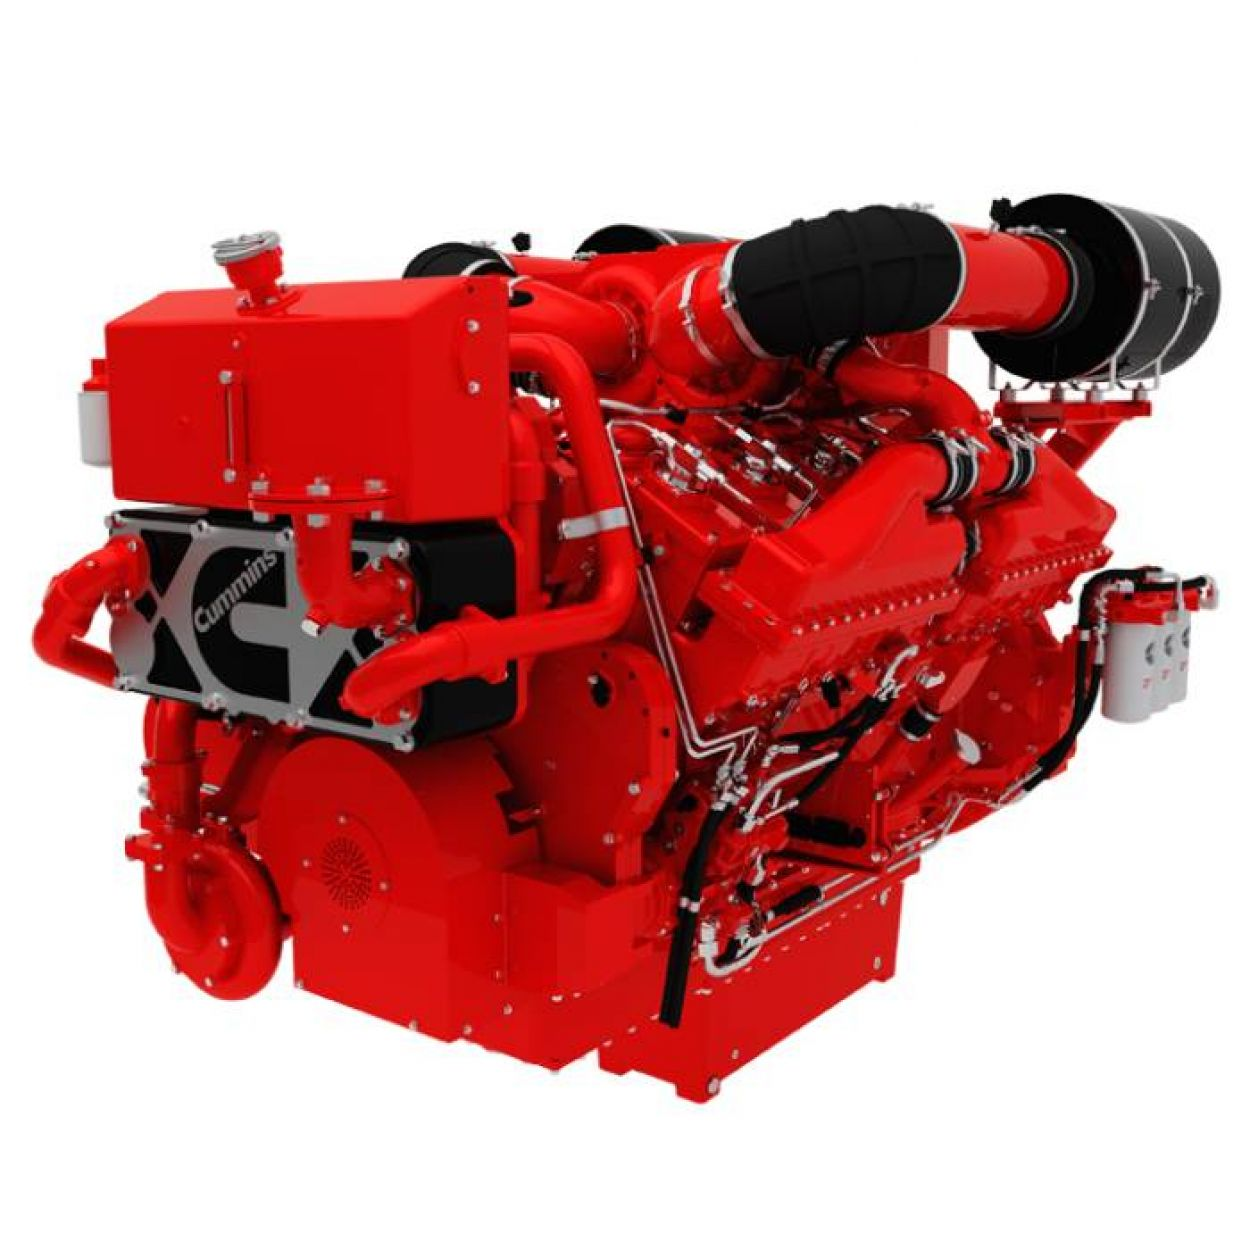 QSK38 Cummins Main Propulsion